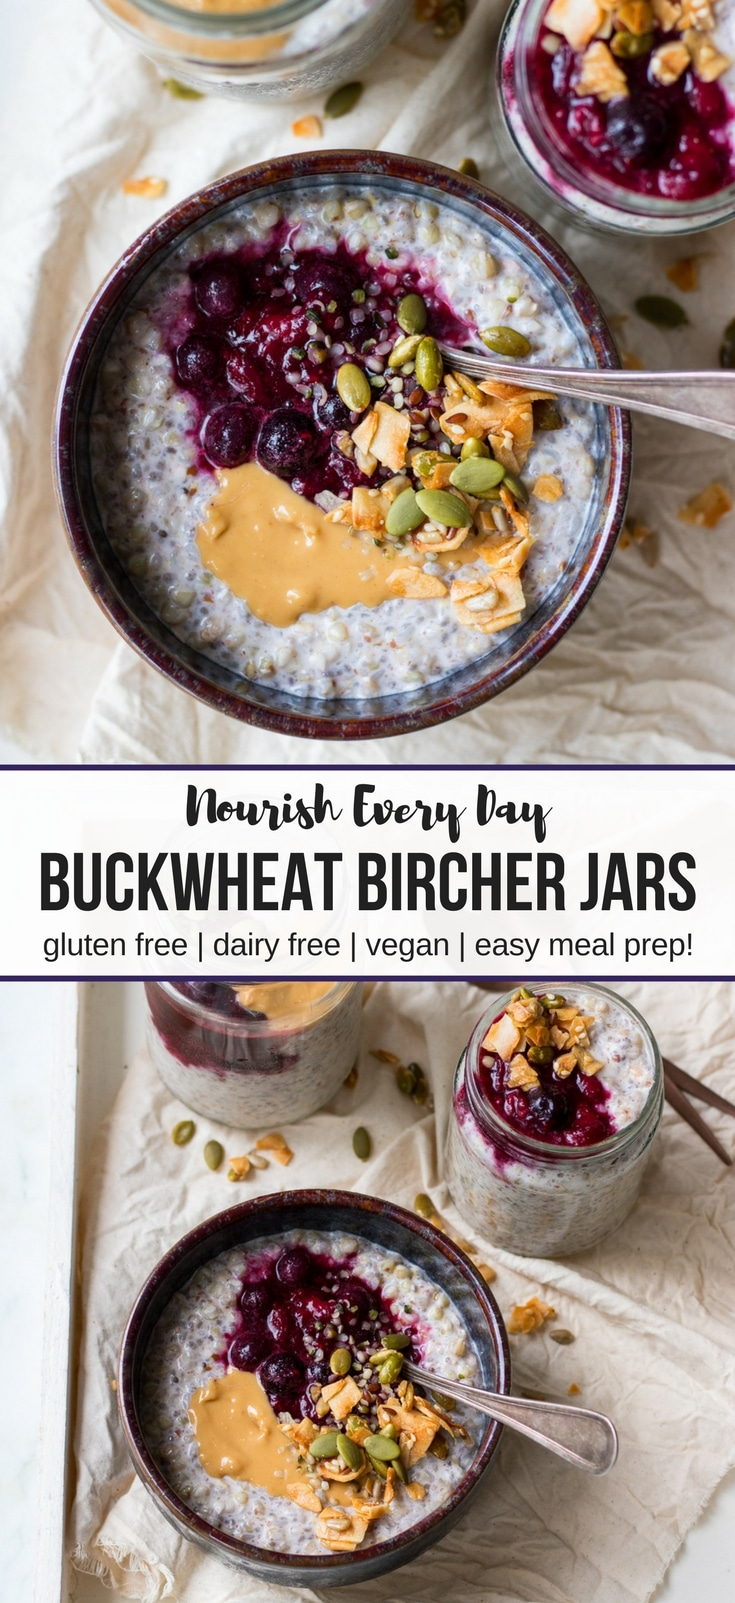 Buckwheat Bircher Breakfast Jars Nourish Every Day - recipe